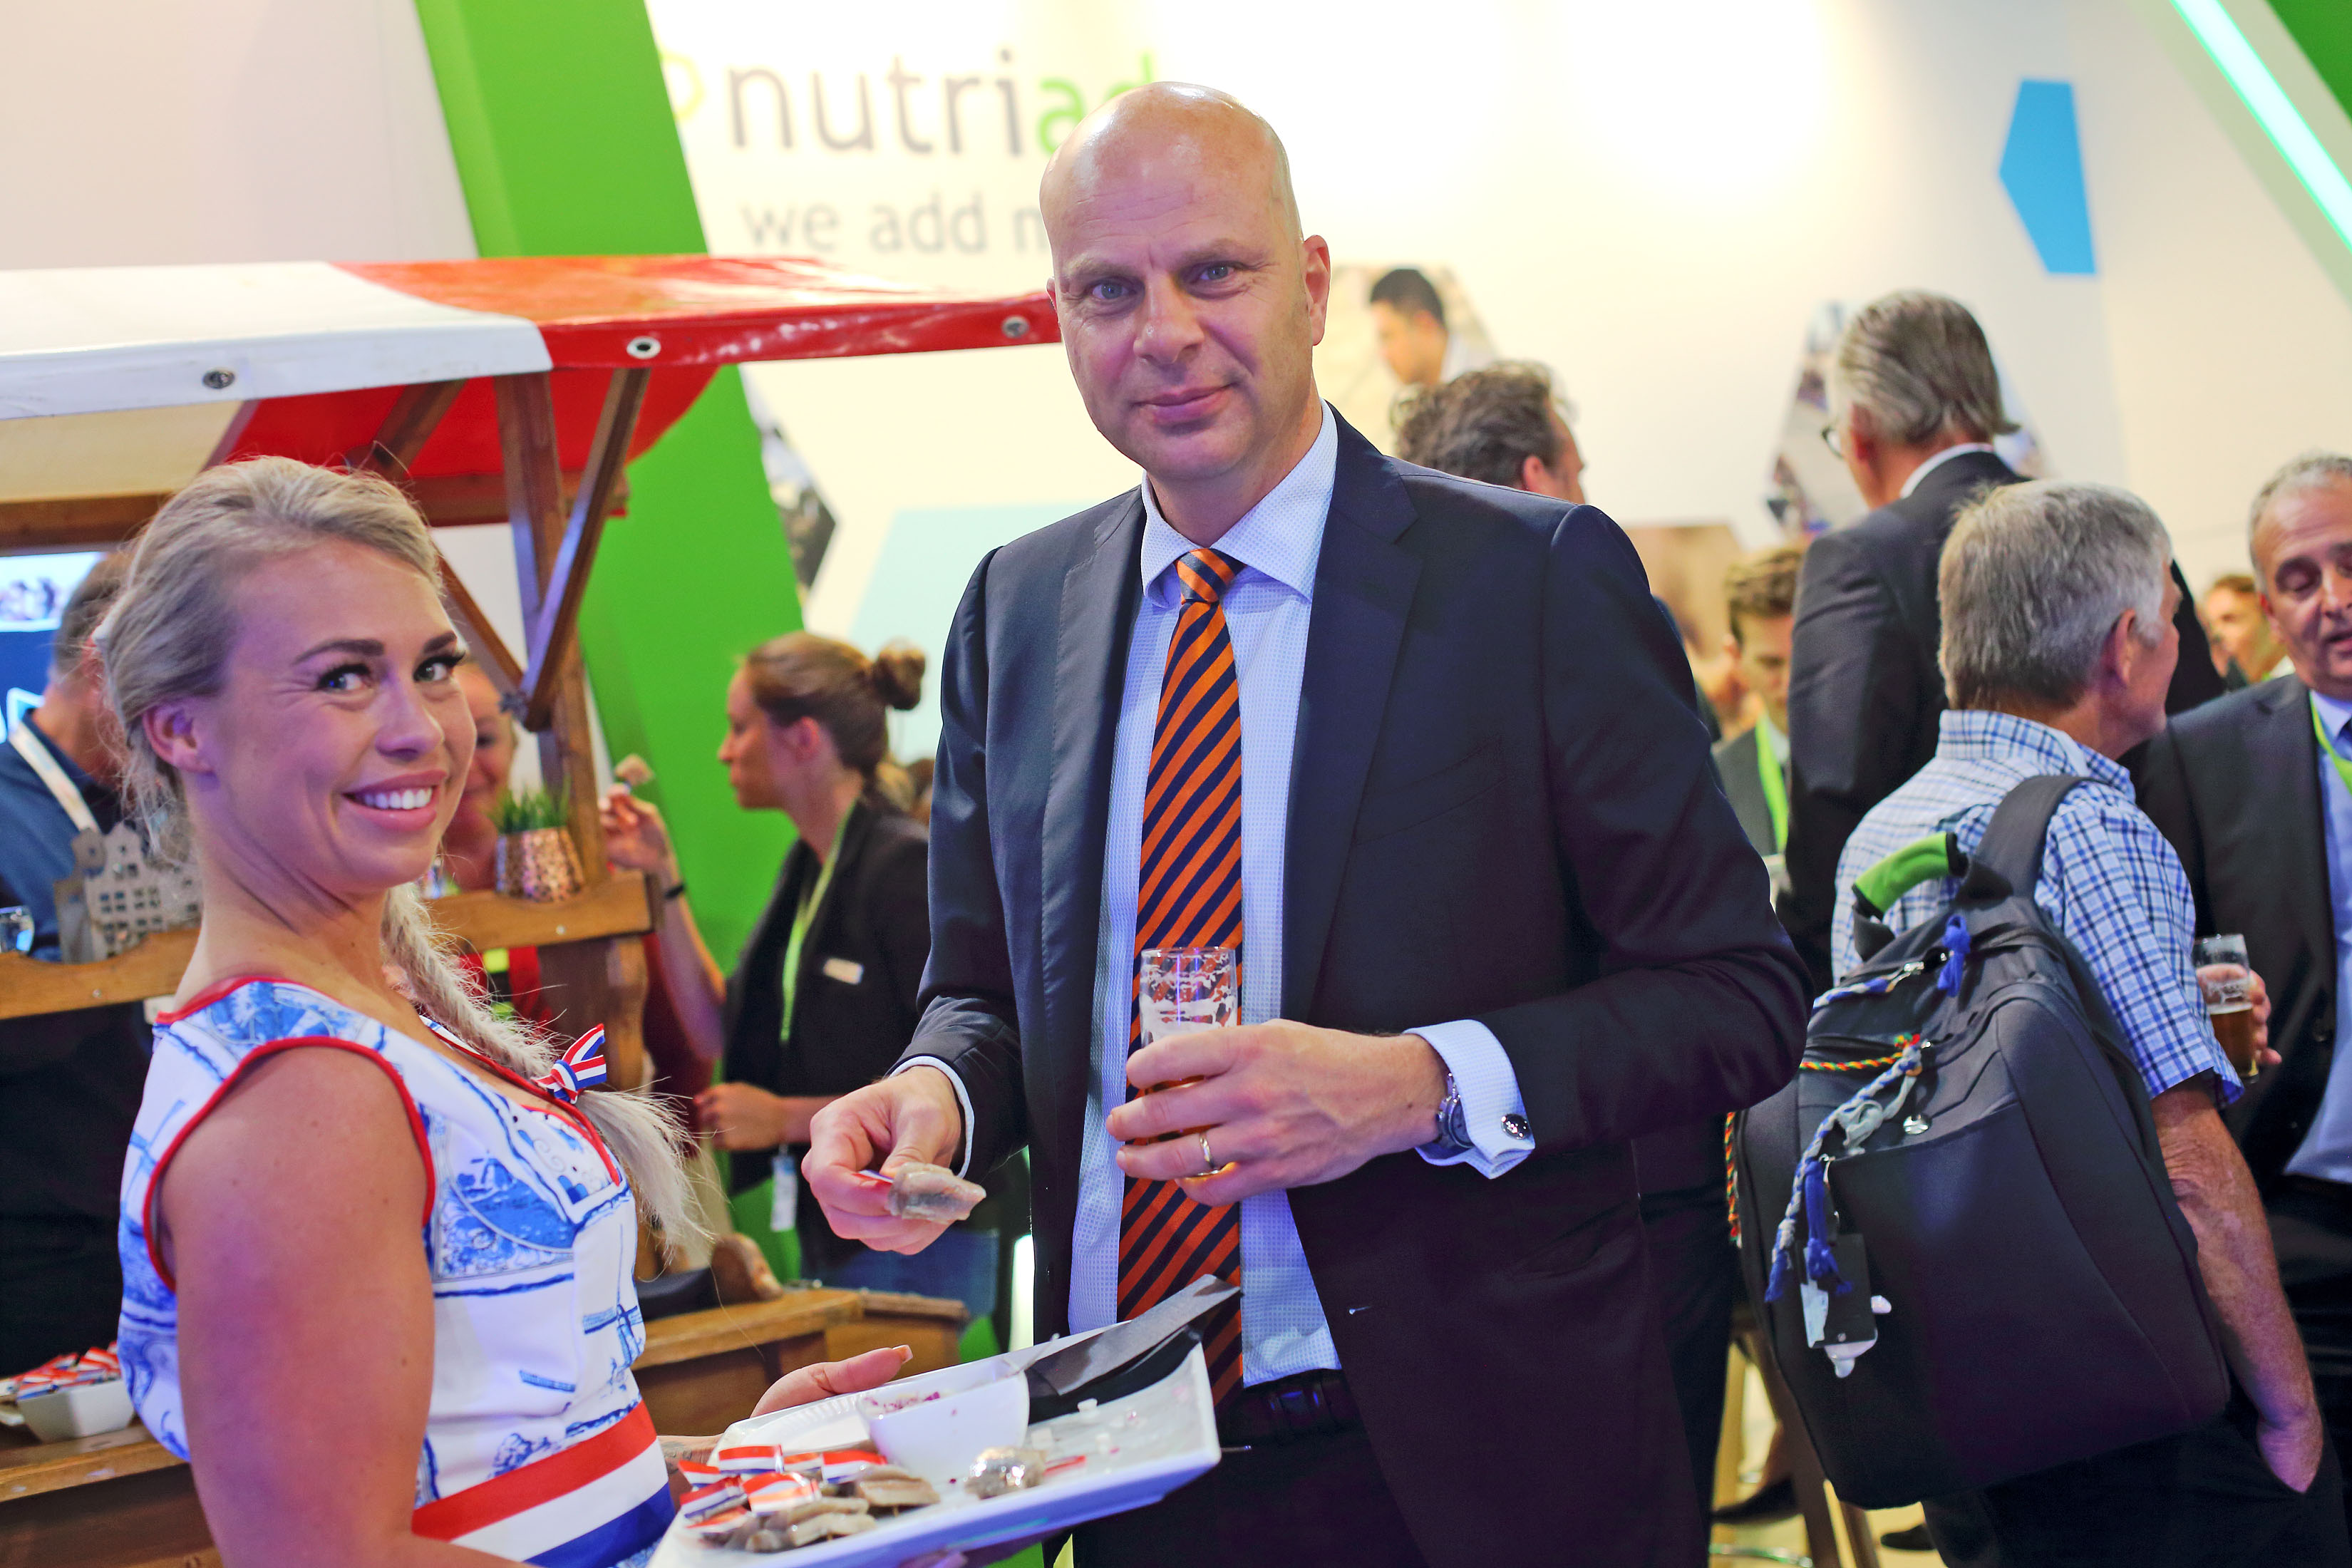 NUTRIAD HOST TRADITIONAL HERRING PARTY